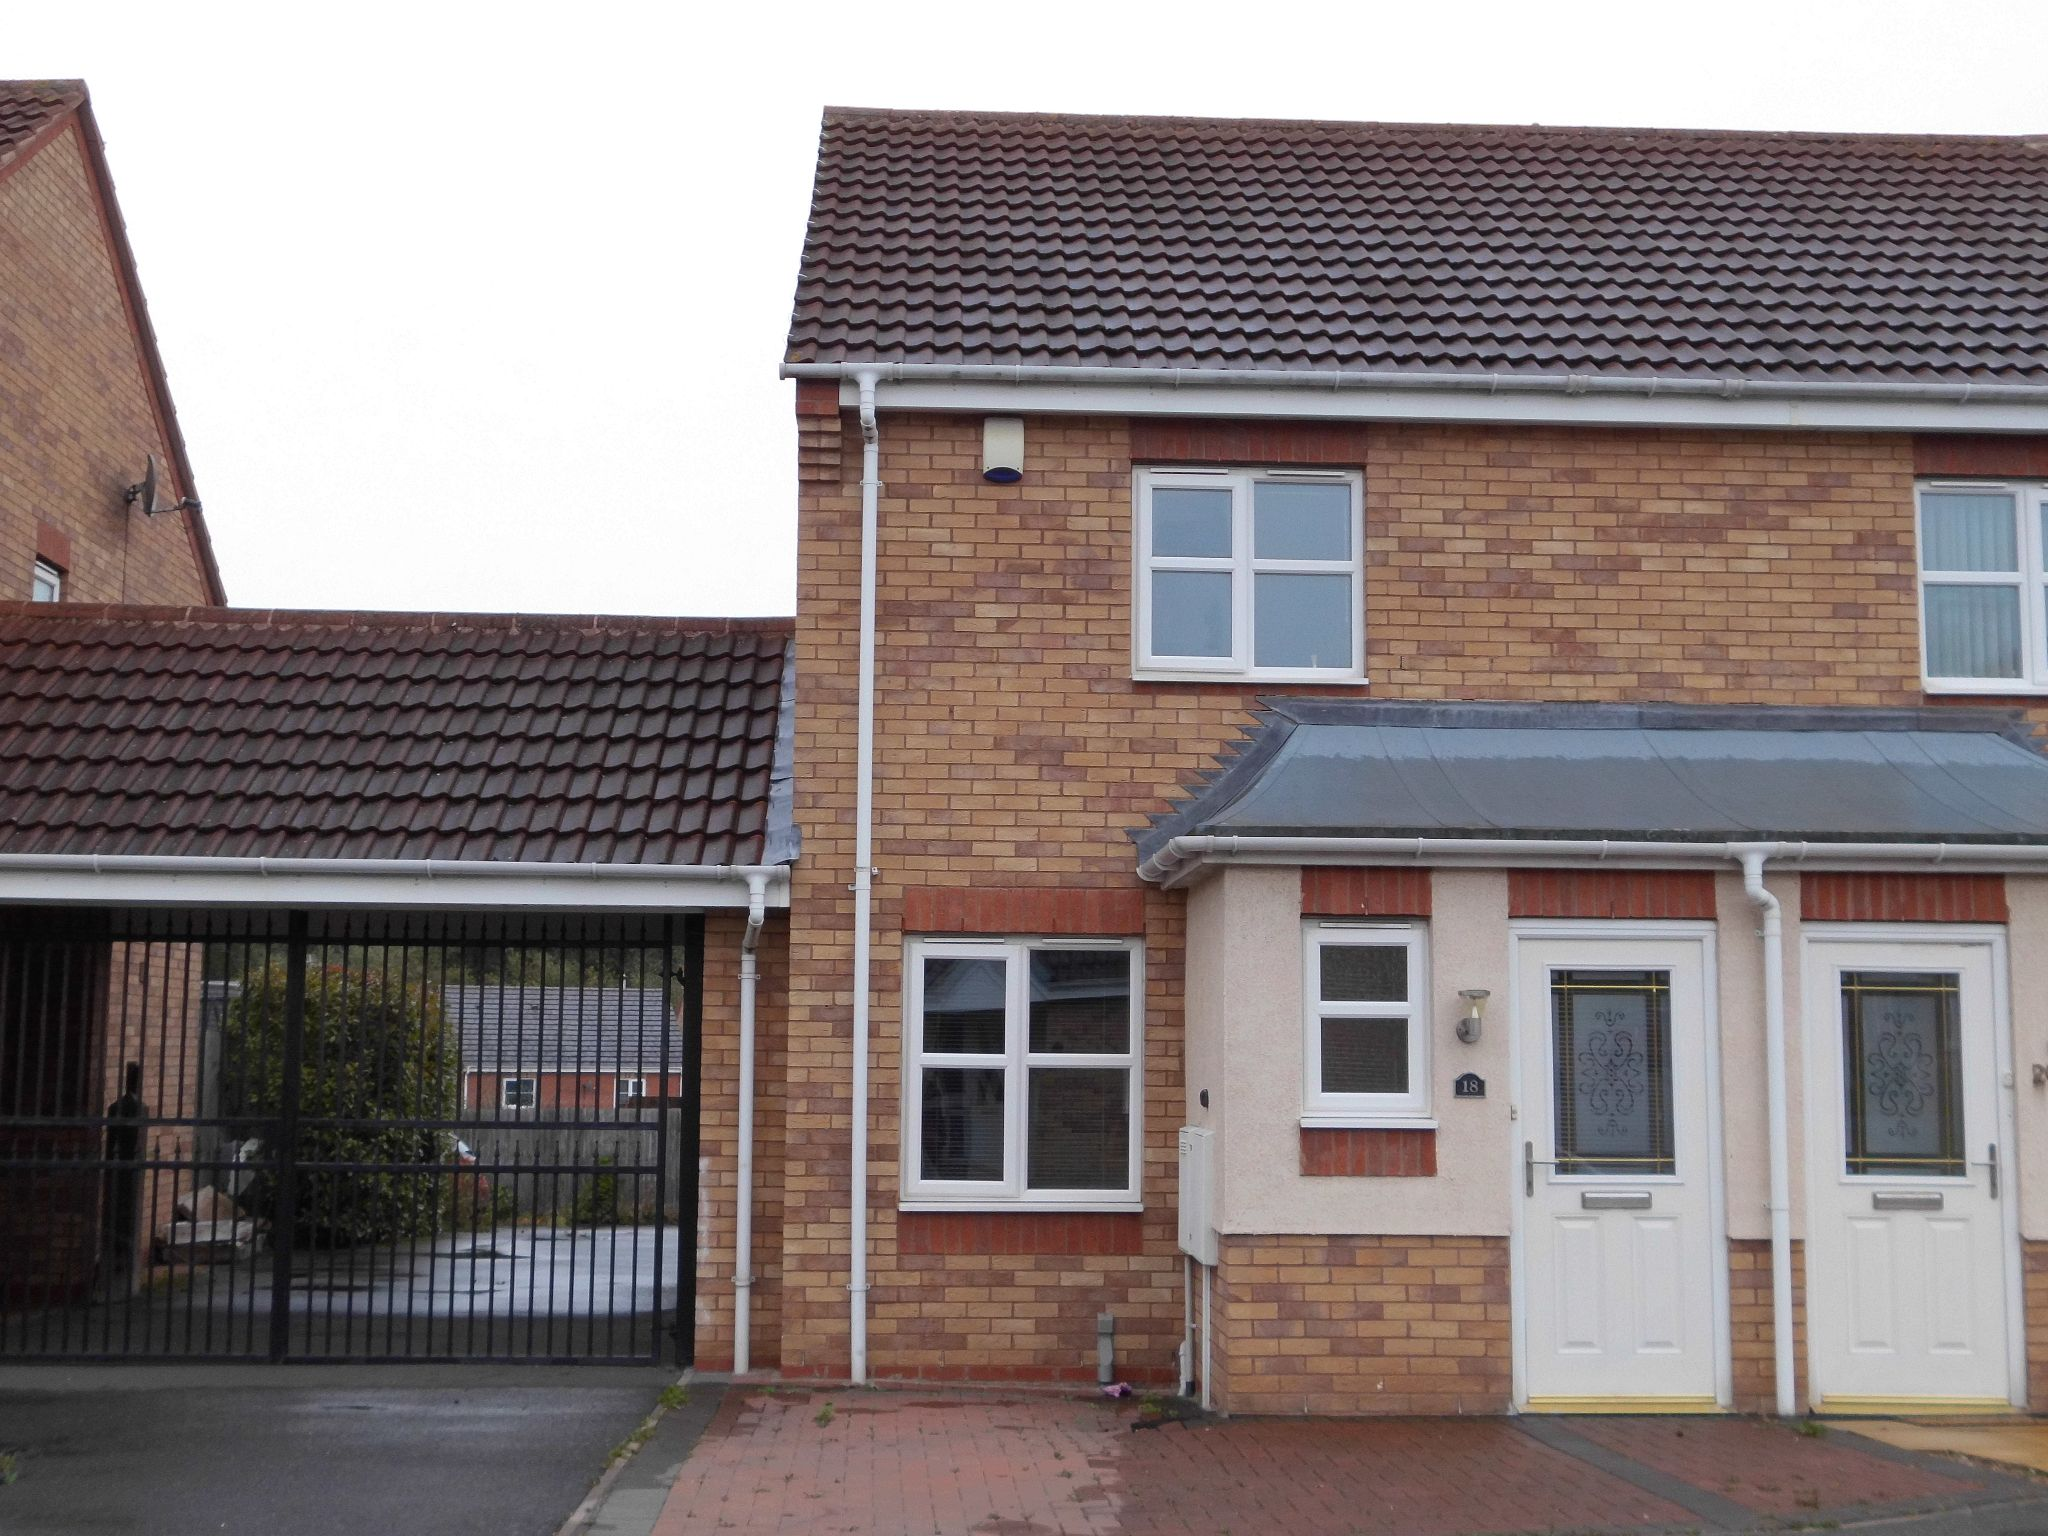 2 bedroom semi-detached house To Let in Leicester - Photograph 1.